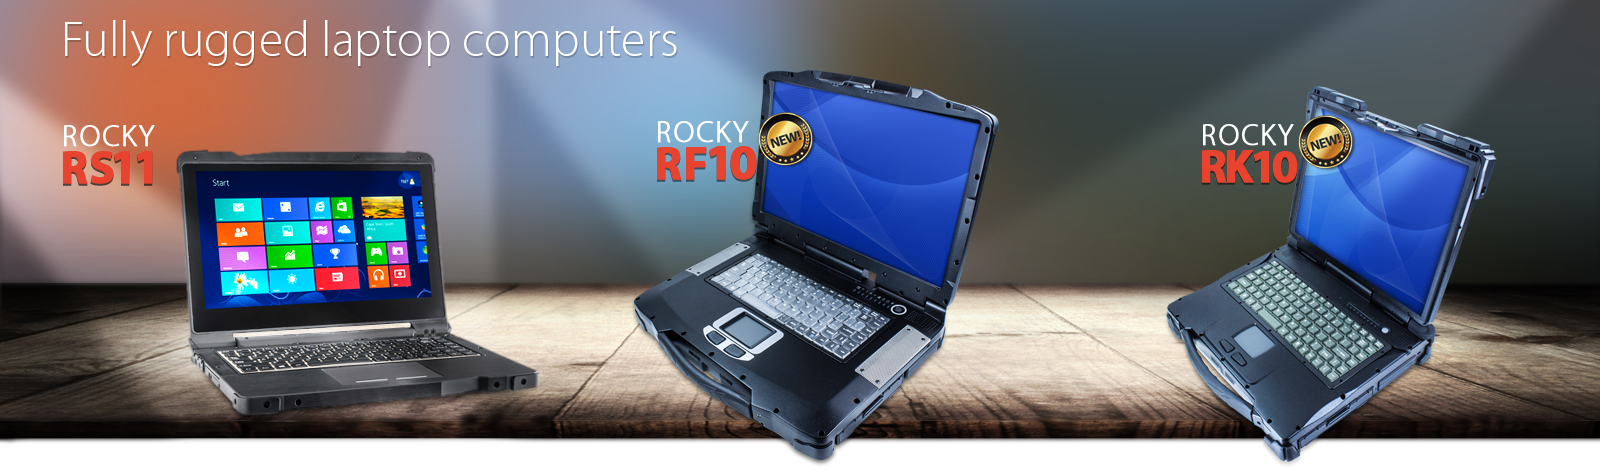 1600×470-cd-site-slider-rs11-rf10-rk10-12-10-2014